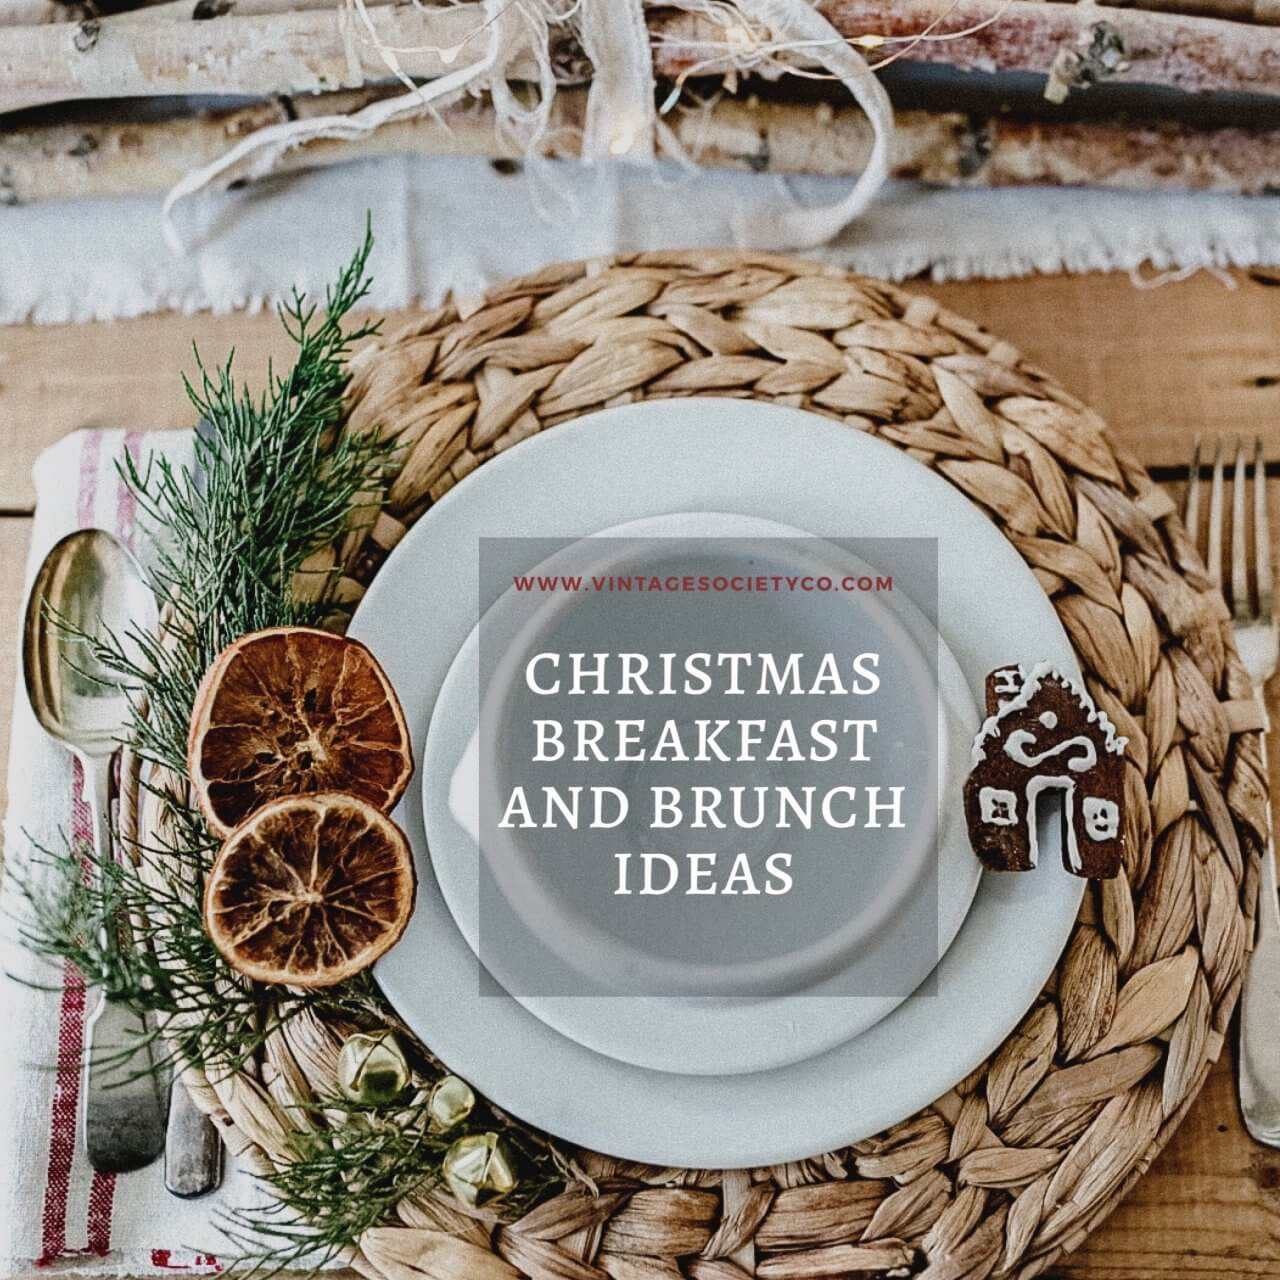 Christmas Breakfast and Brunch Ideas